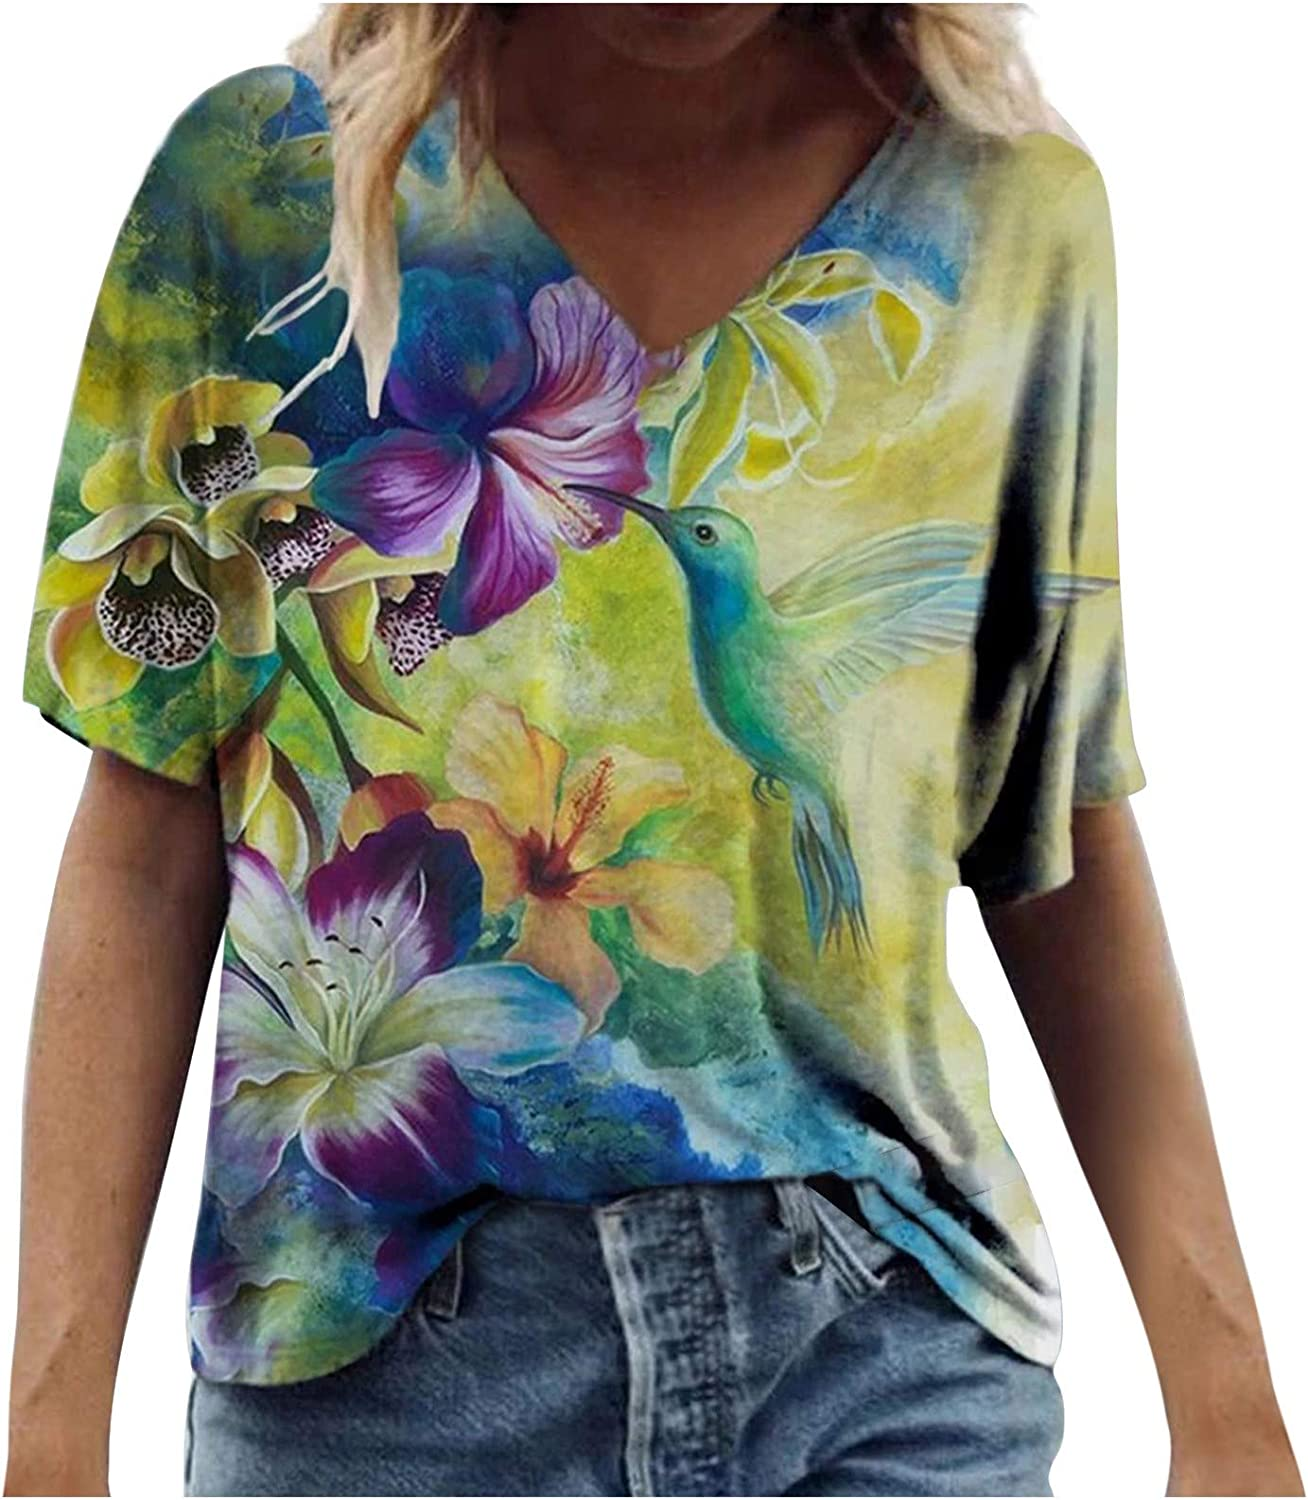 Uppada Women's Summer Short Sleeve Tunic Tops V Neck Colorful Floral Printed Tees Shirt Casual Comfy Blouses Tops